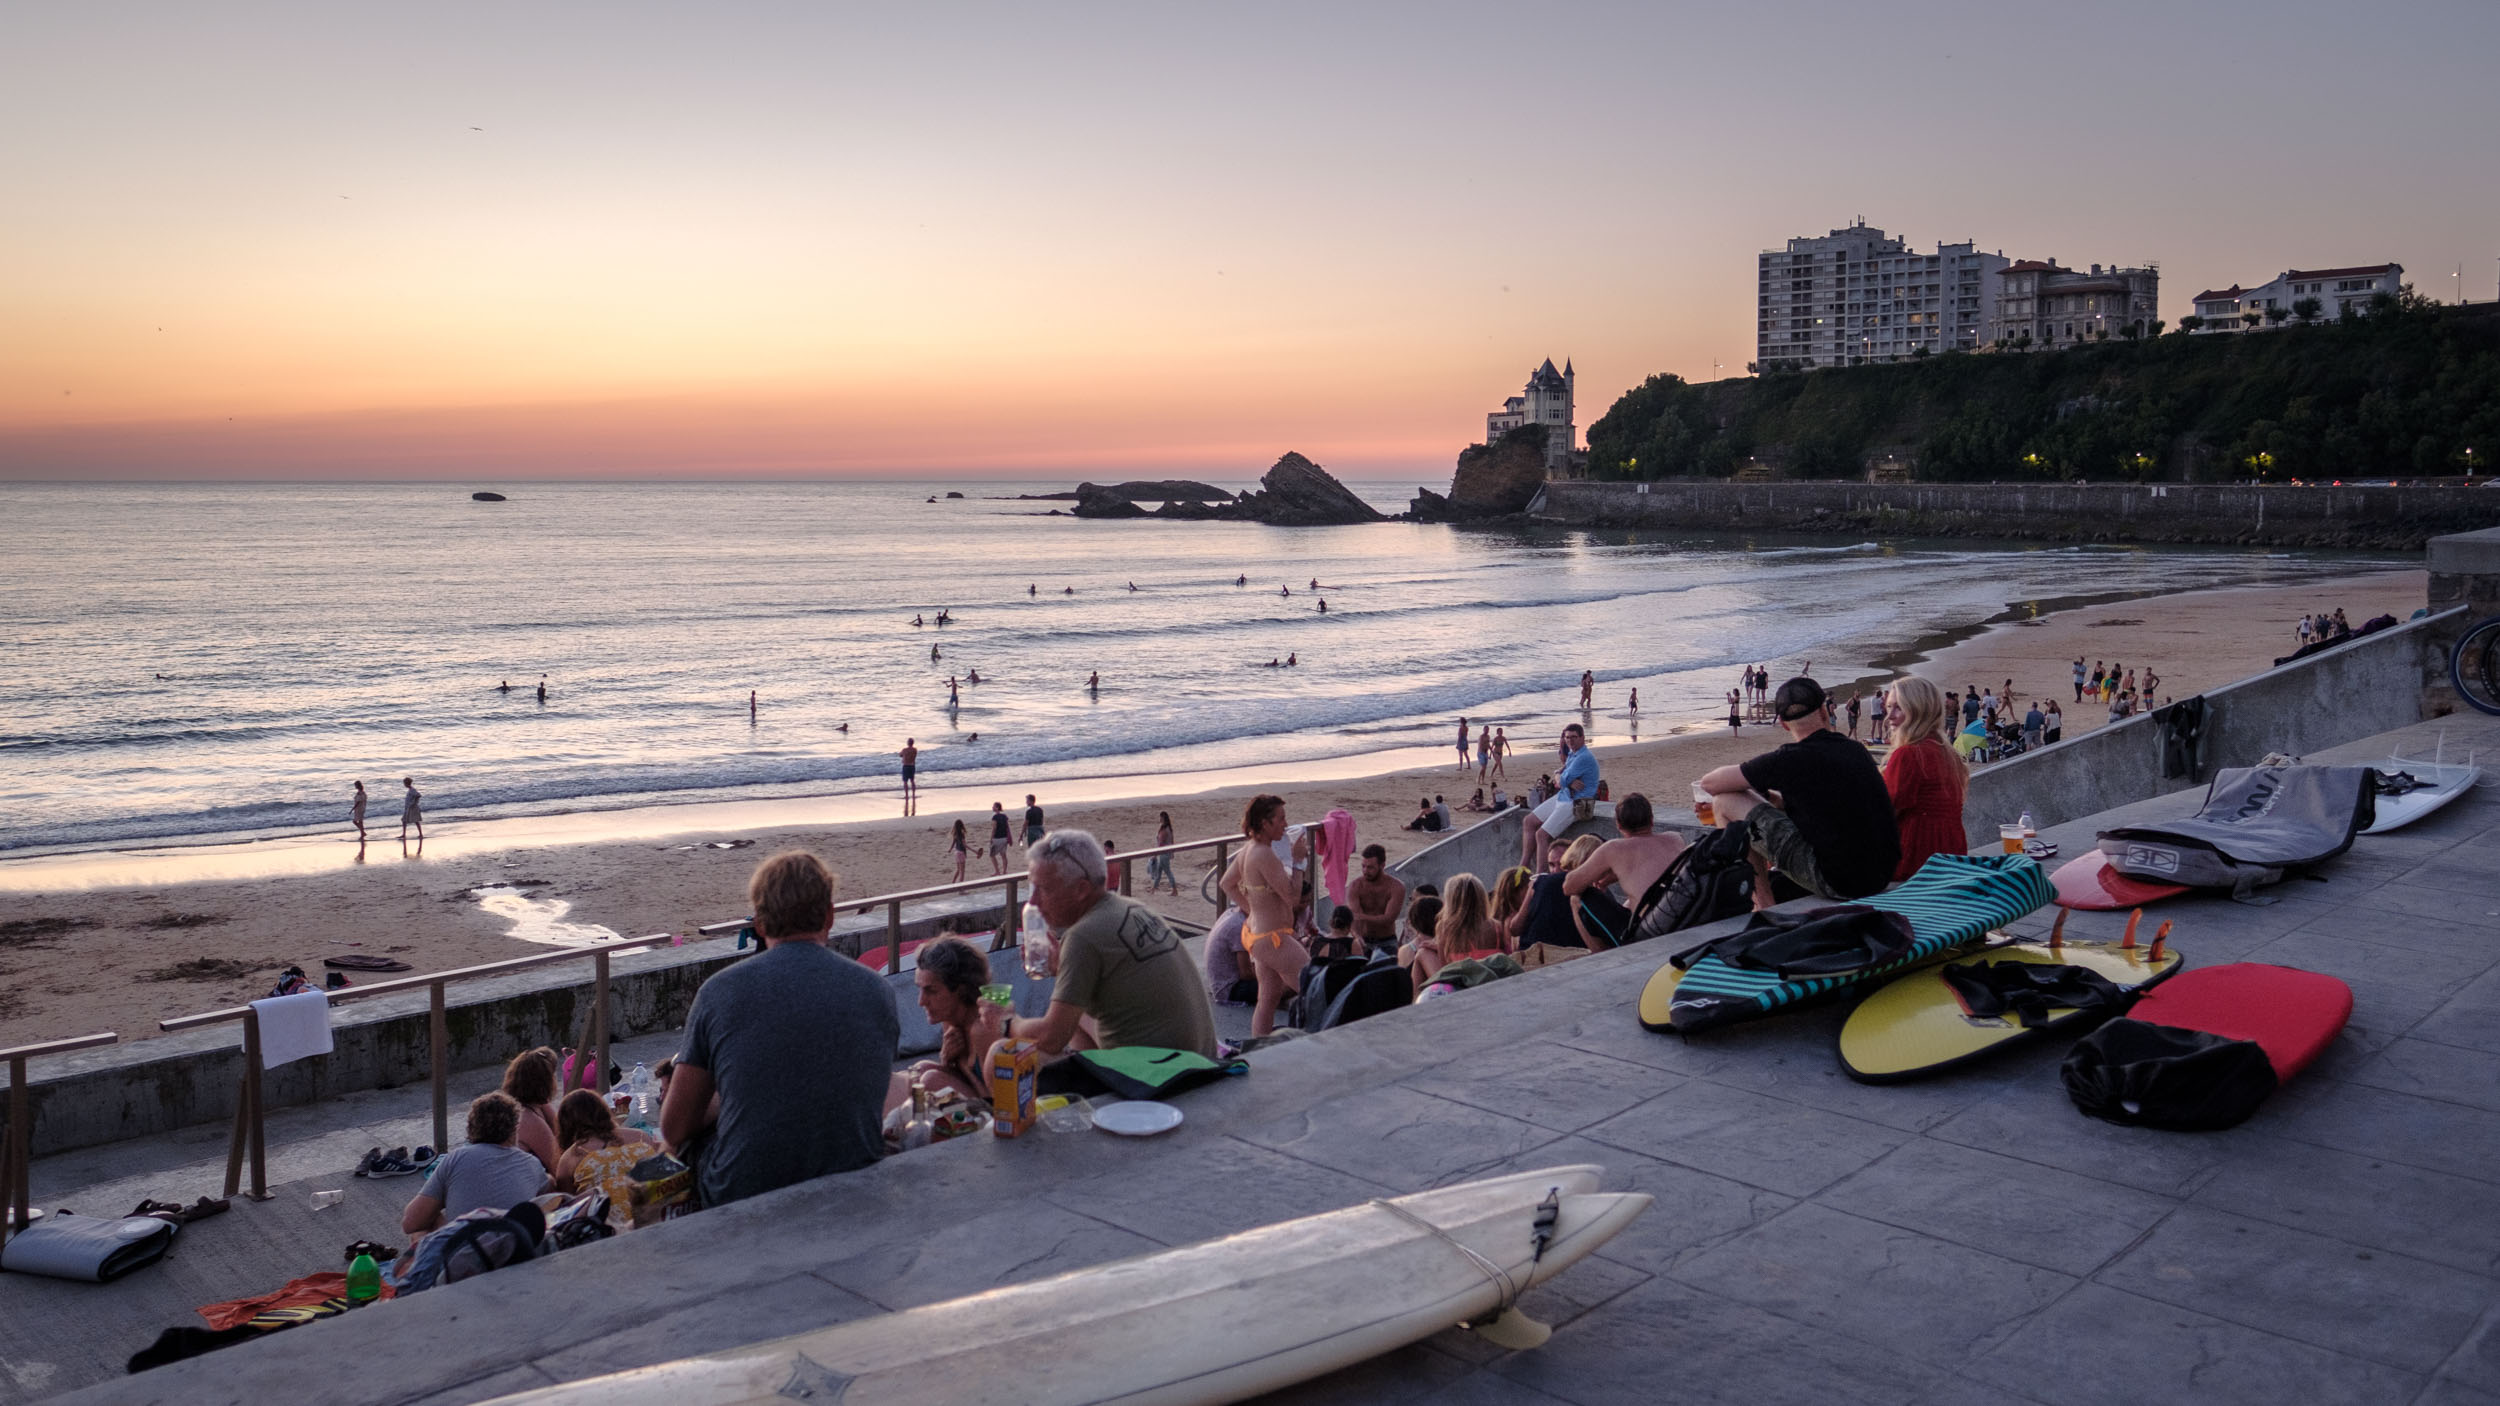 Abend in Biarritz